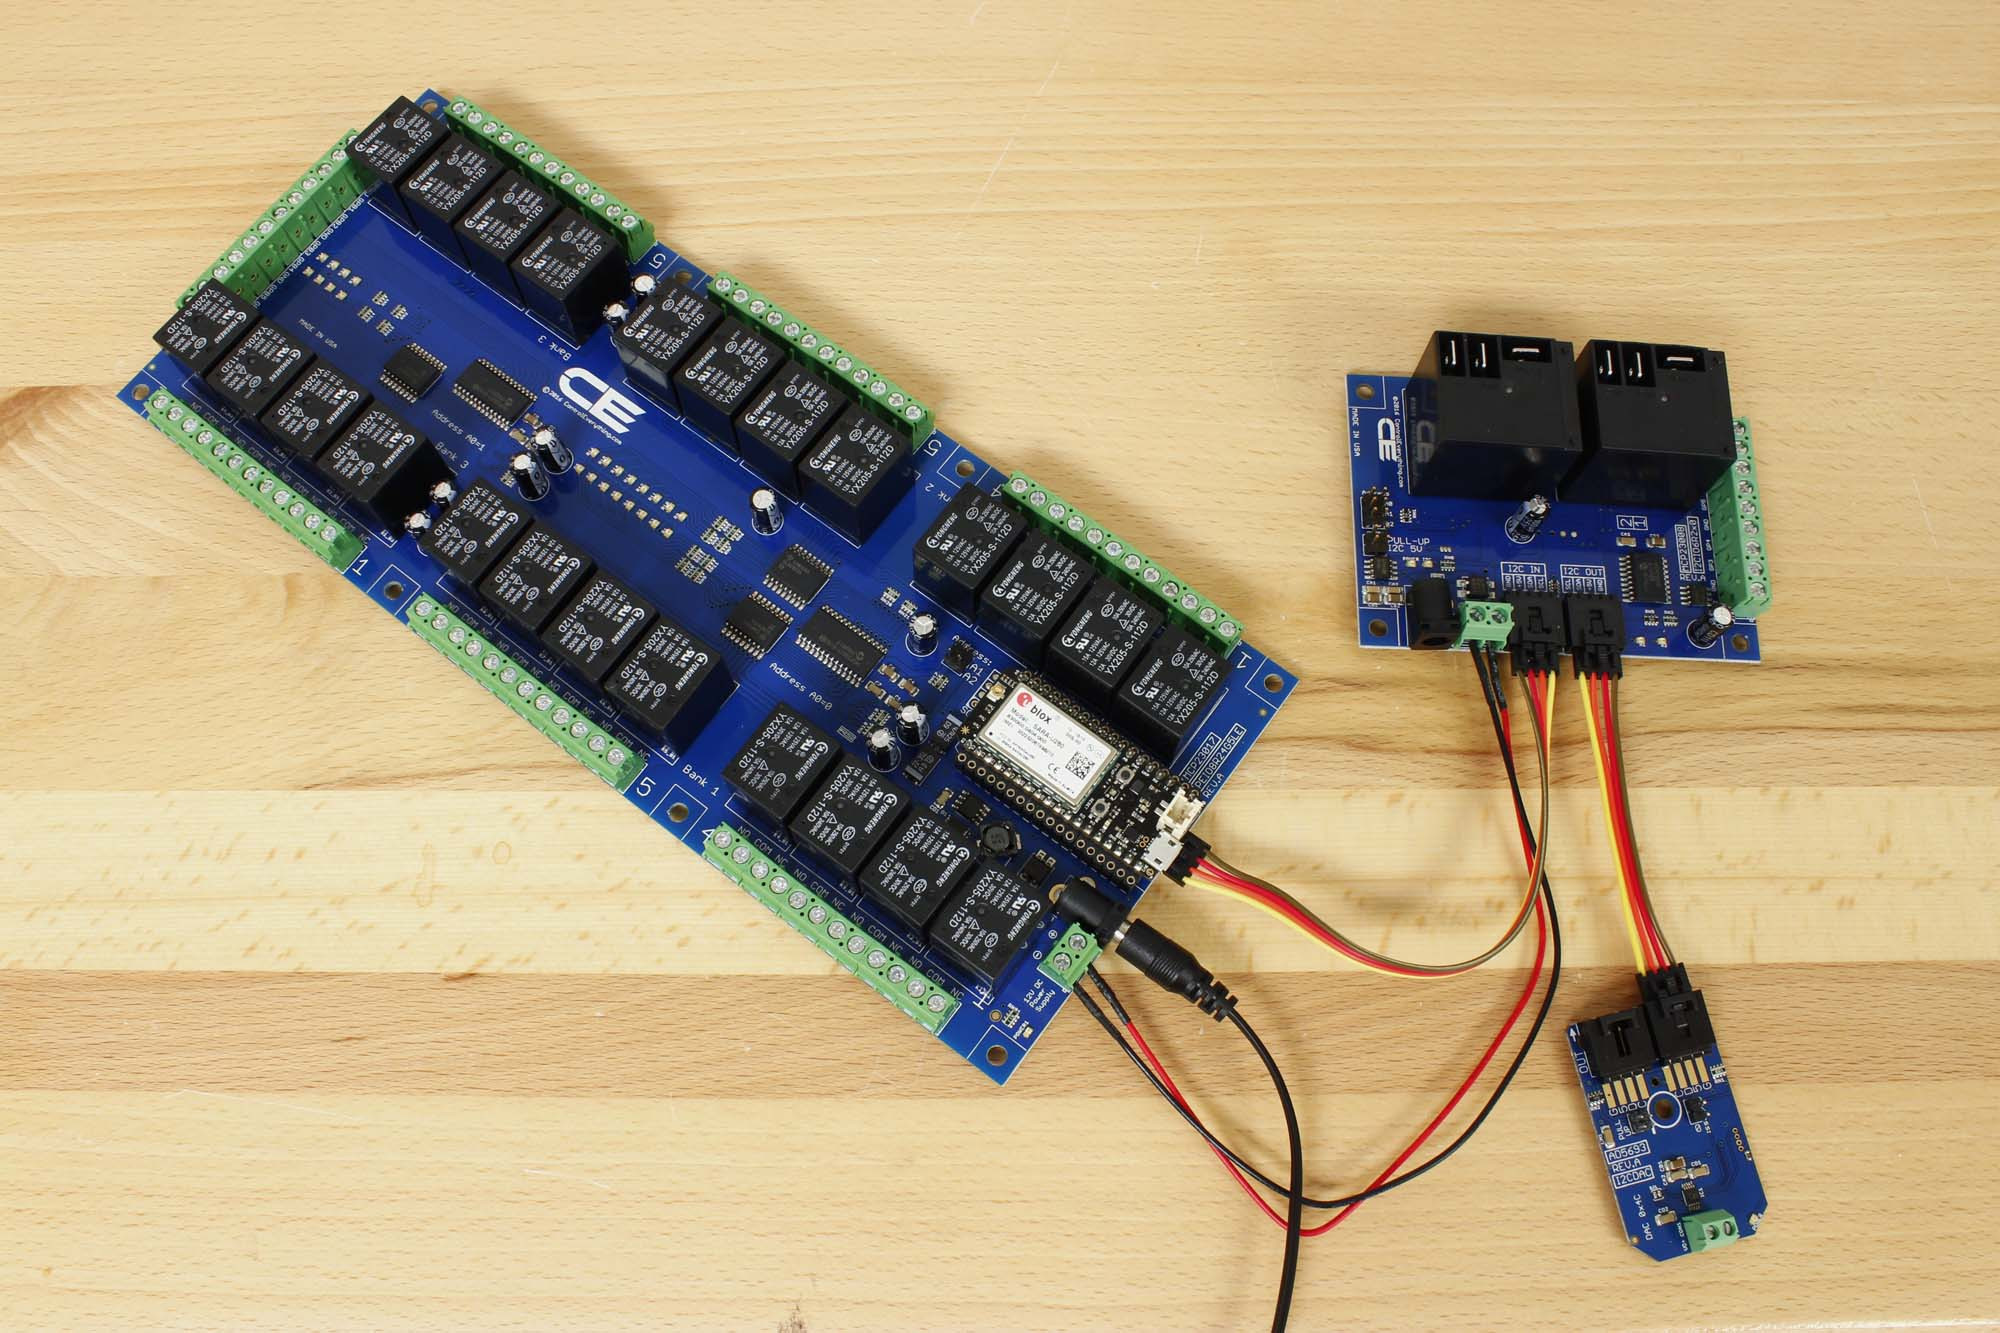 24 Channel General Purpose Spdt Relay Shield 8 Gpio With Iot Micro 12v 20 Amp Cellular Dac Two Boards And Using Electron